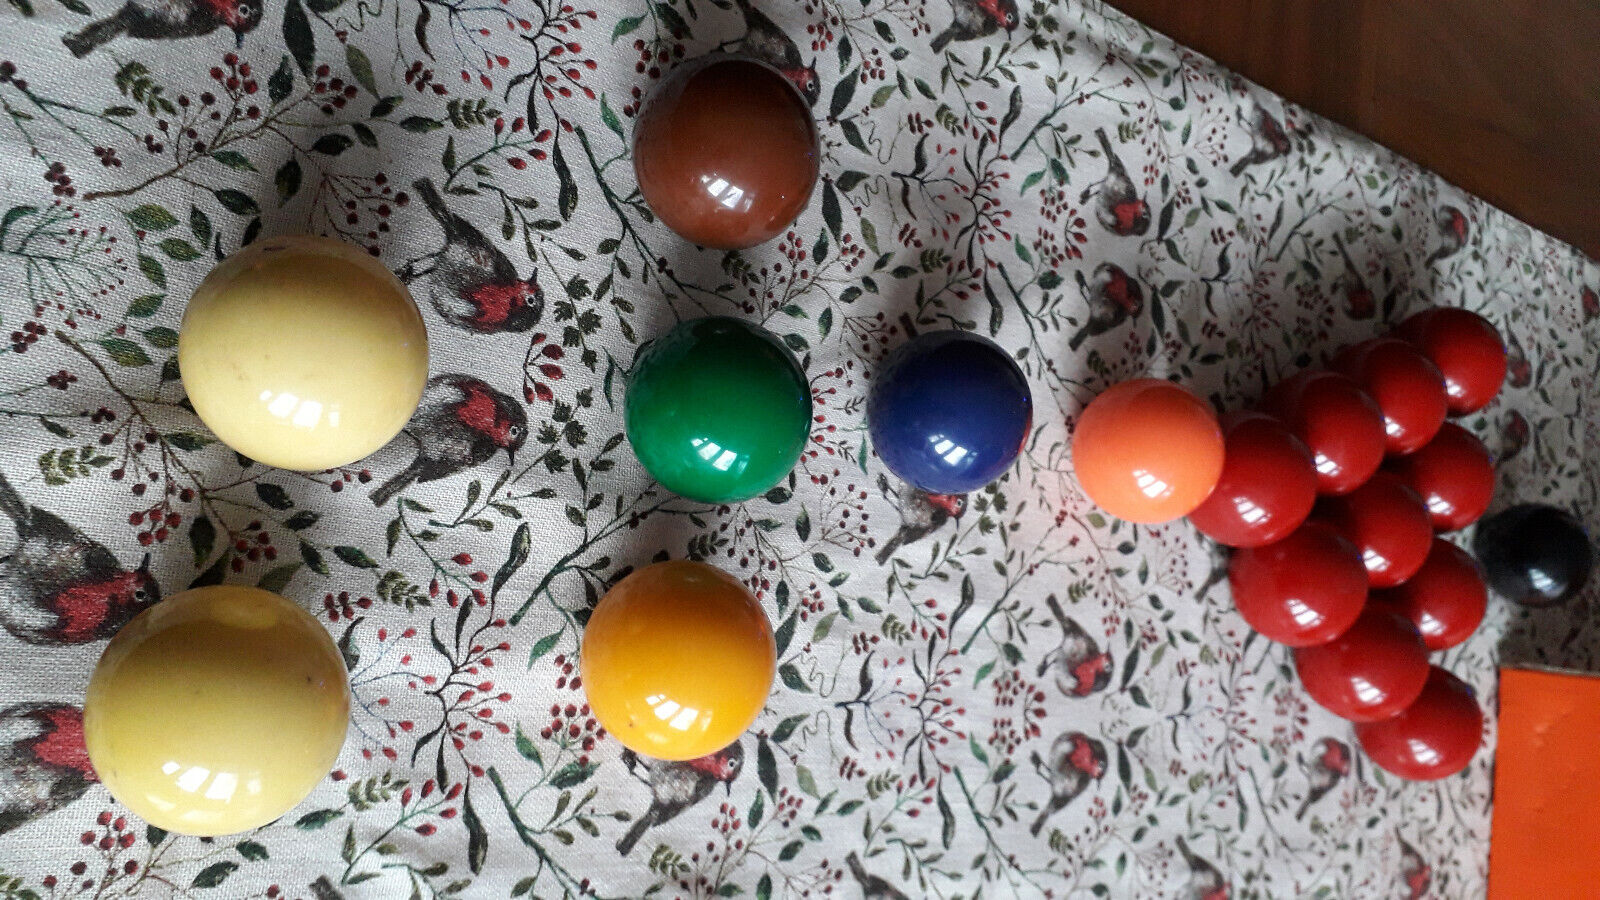 Snooker balls, 10 reds in set, 48mm 1 7/8 inch. Used in good condition.